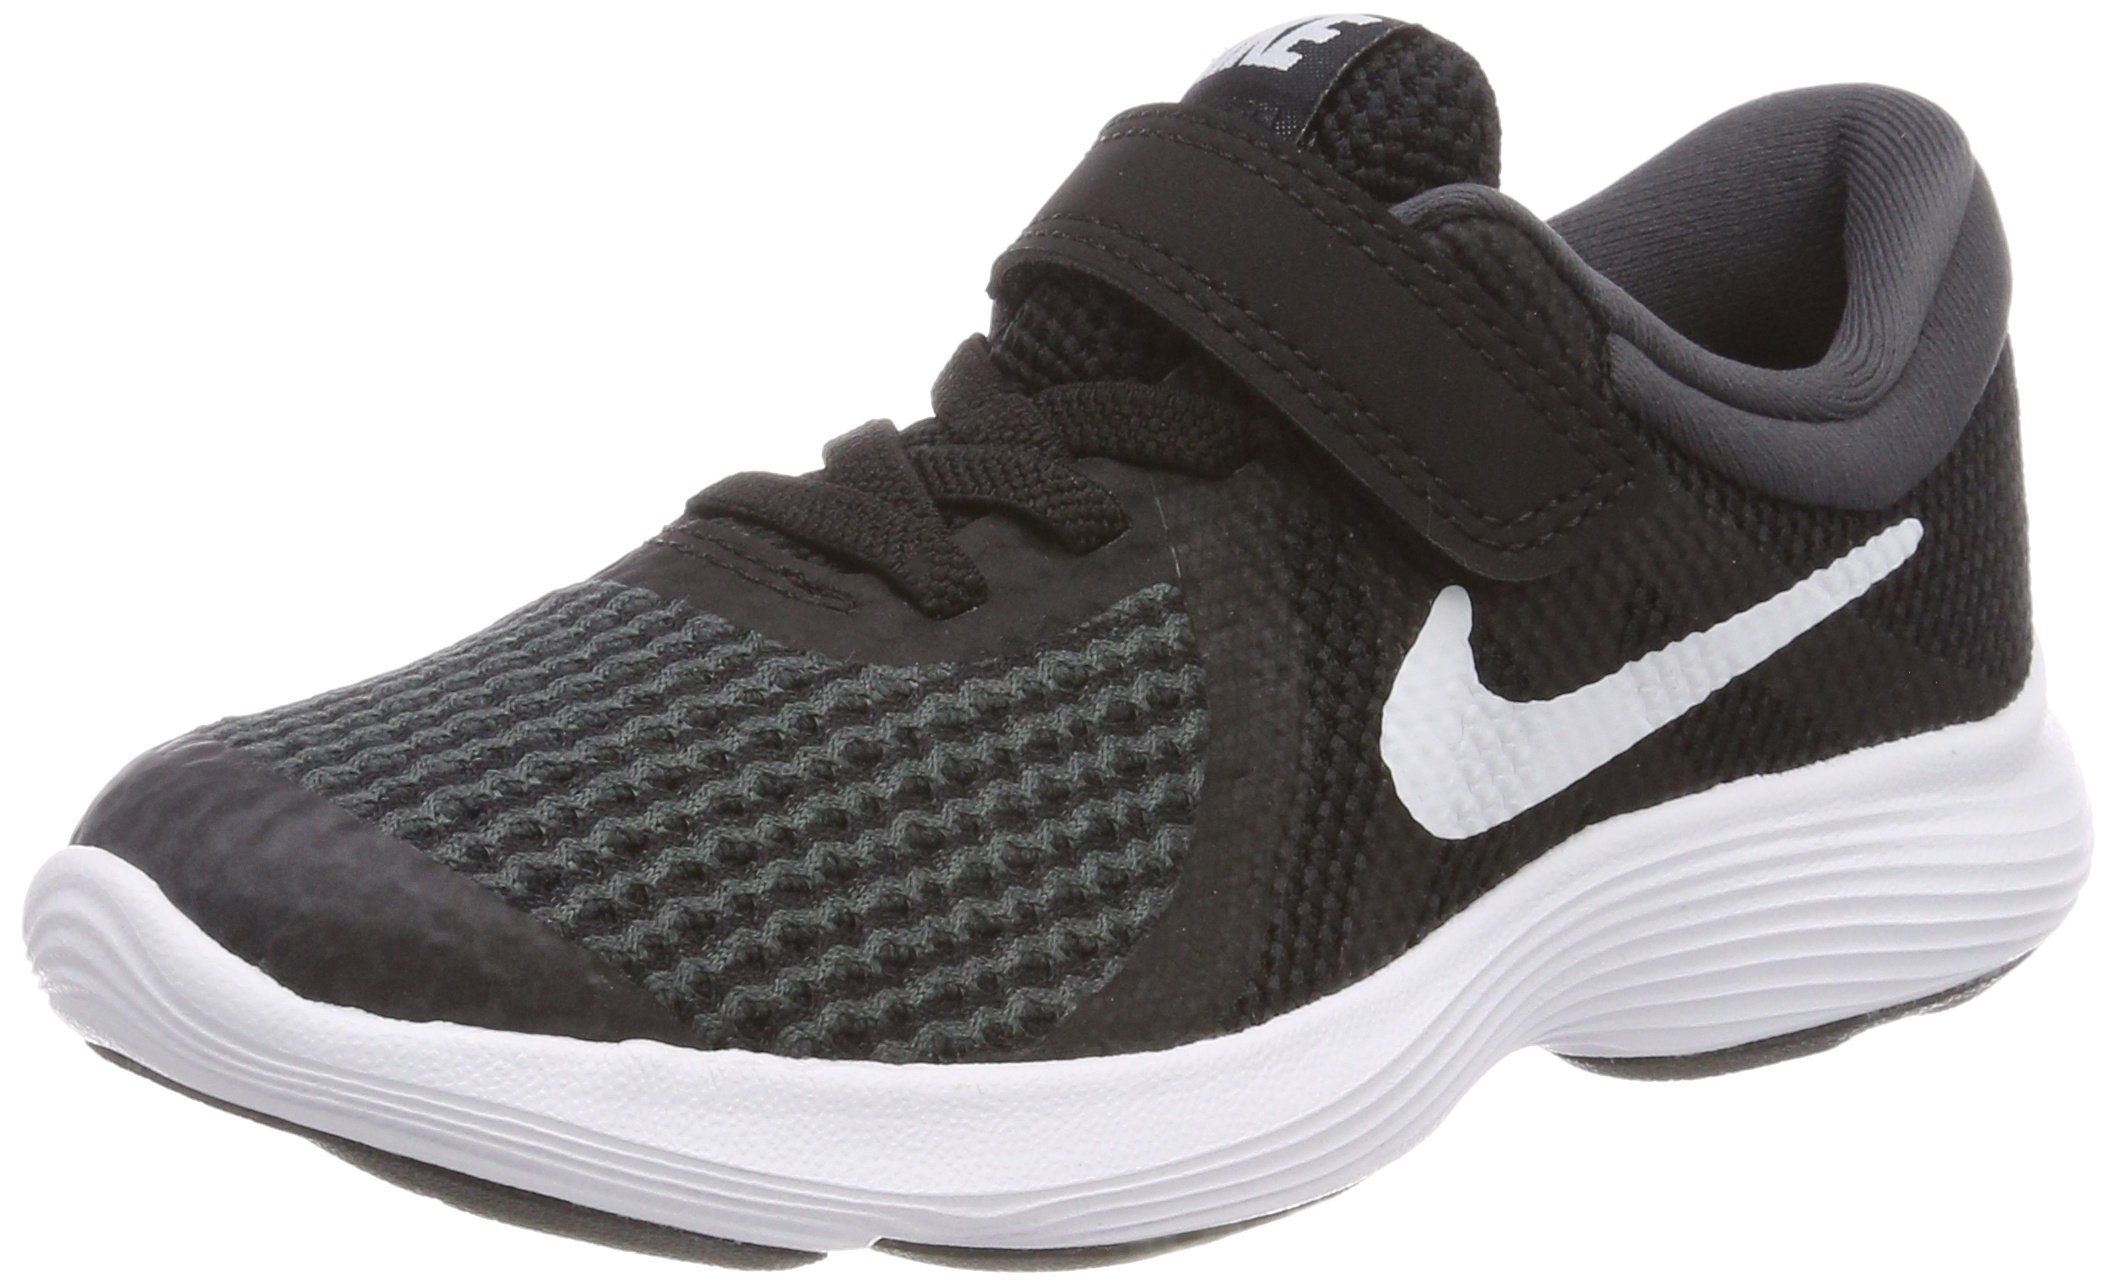 Nike Boys' Revolution 4 (PSV) Running Shoe, Black/White-Anthracite, 10.5C Youth US Little Kid by Nike (Image #1)